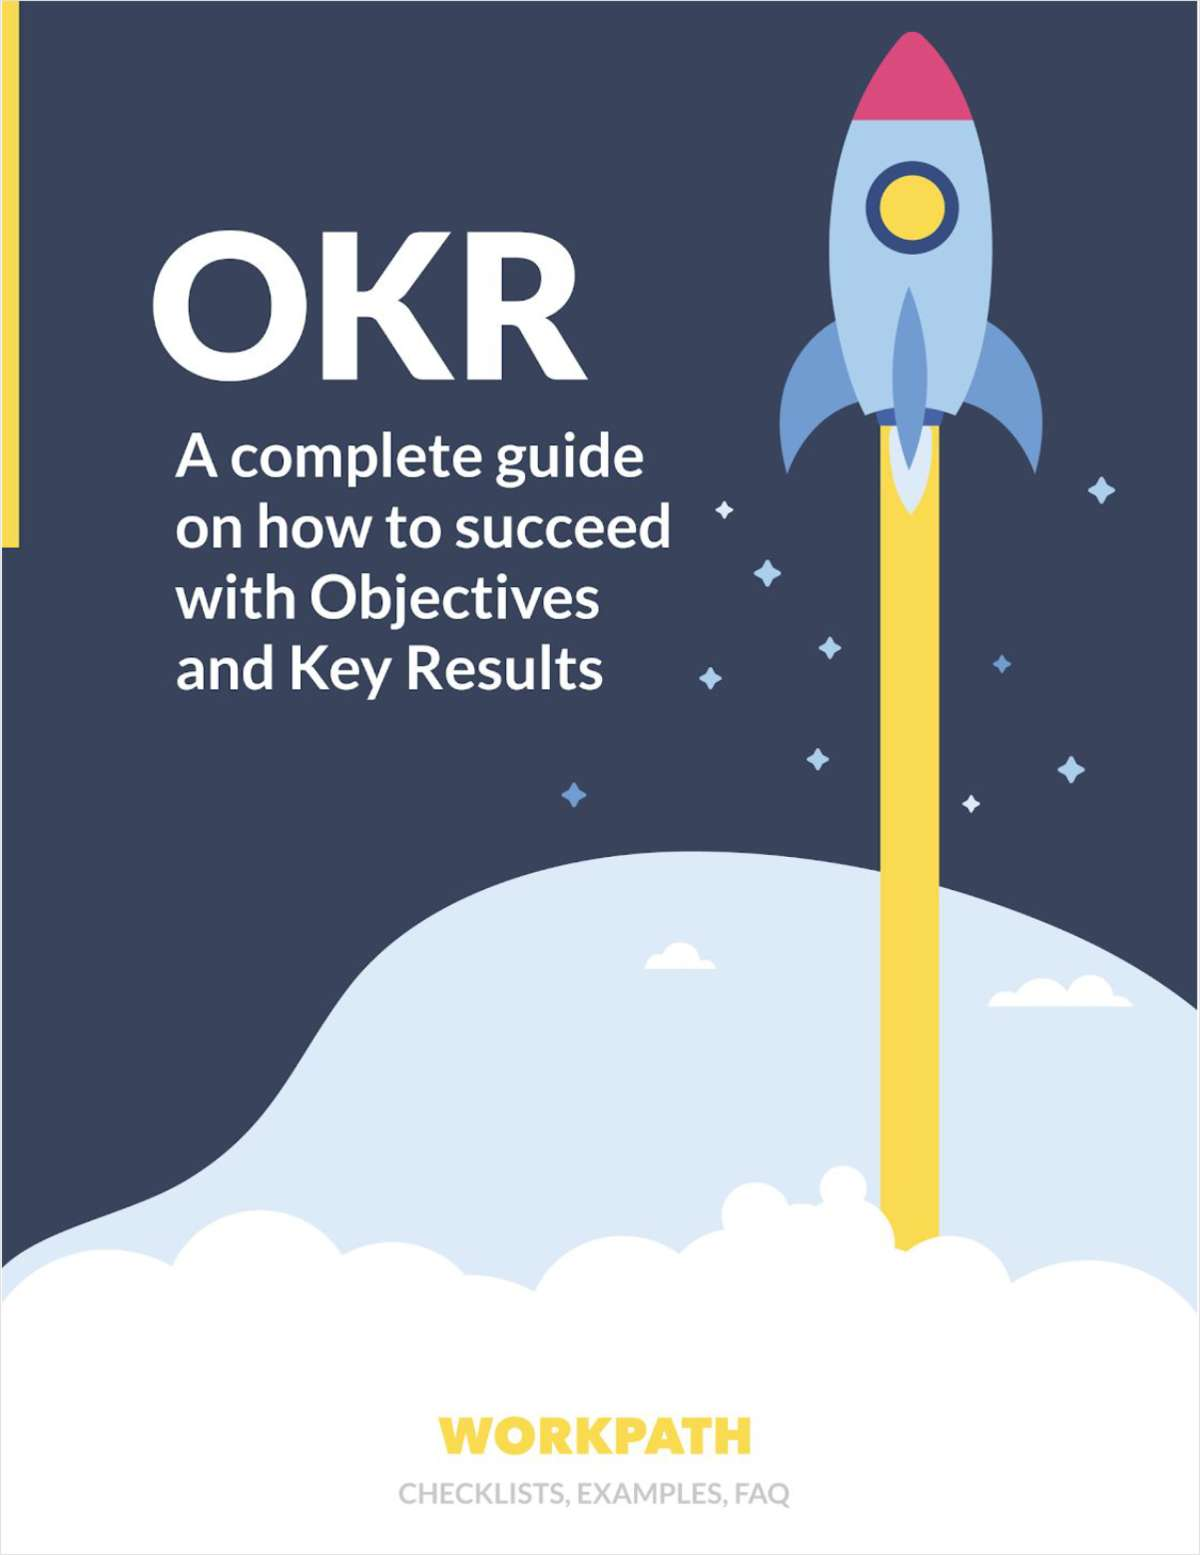 OKR - A Complete Guide on How To Succeed With Objectives and Key Results